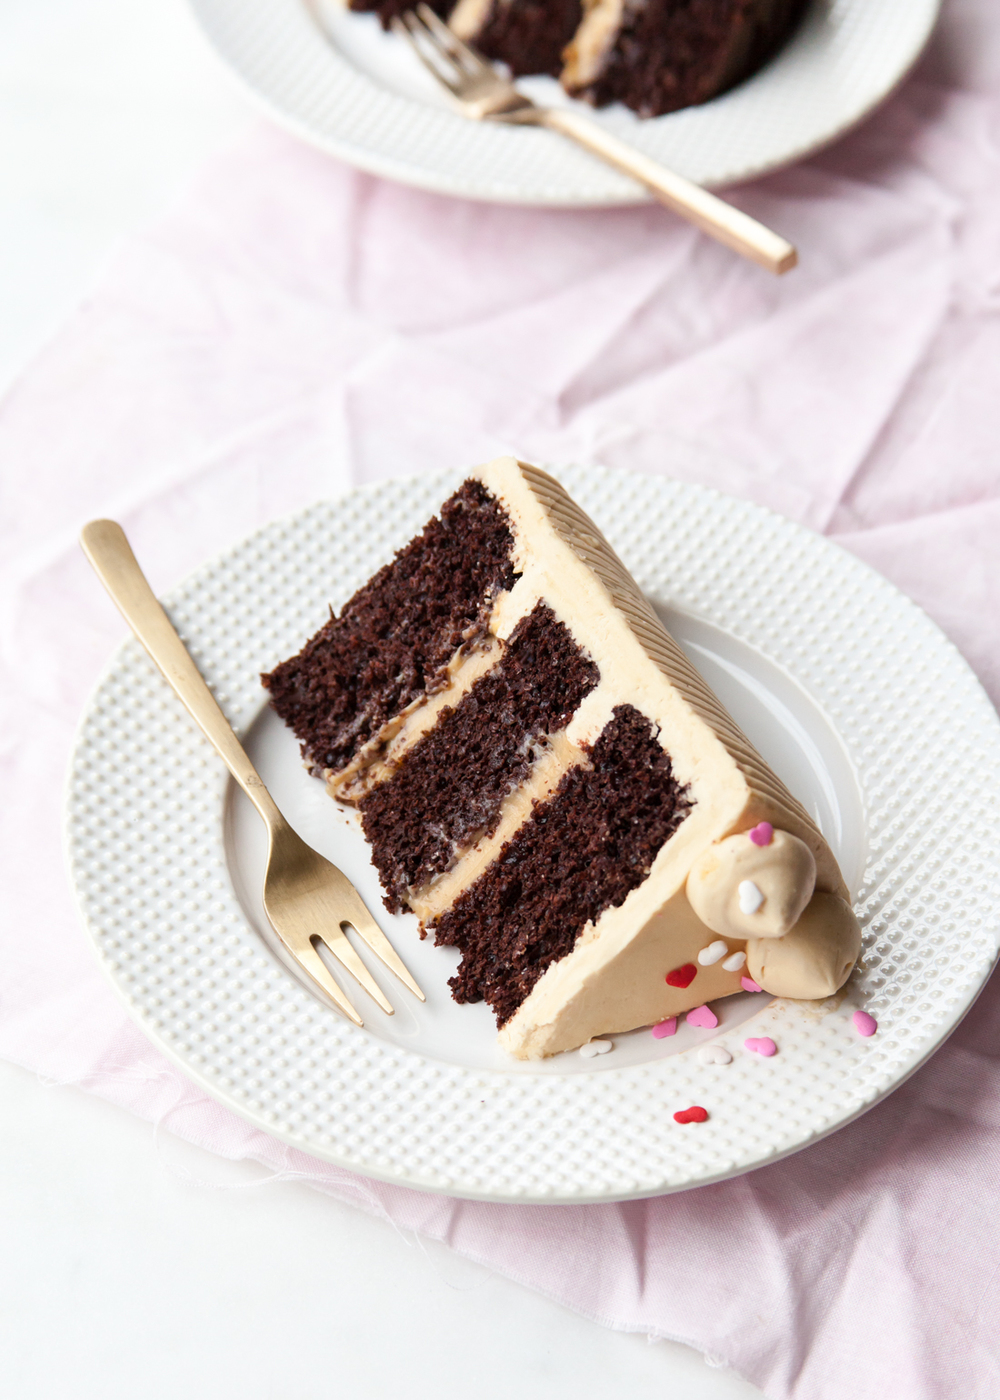 Chocolate Pastry Cake Images : Chocolate Caramel Valentine s Day Cake   Style Sweet CA